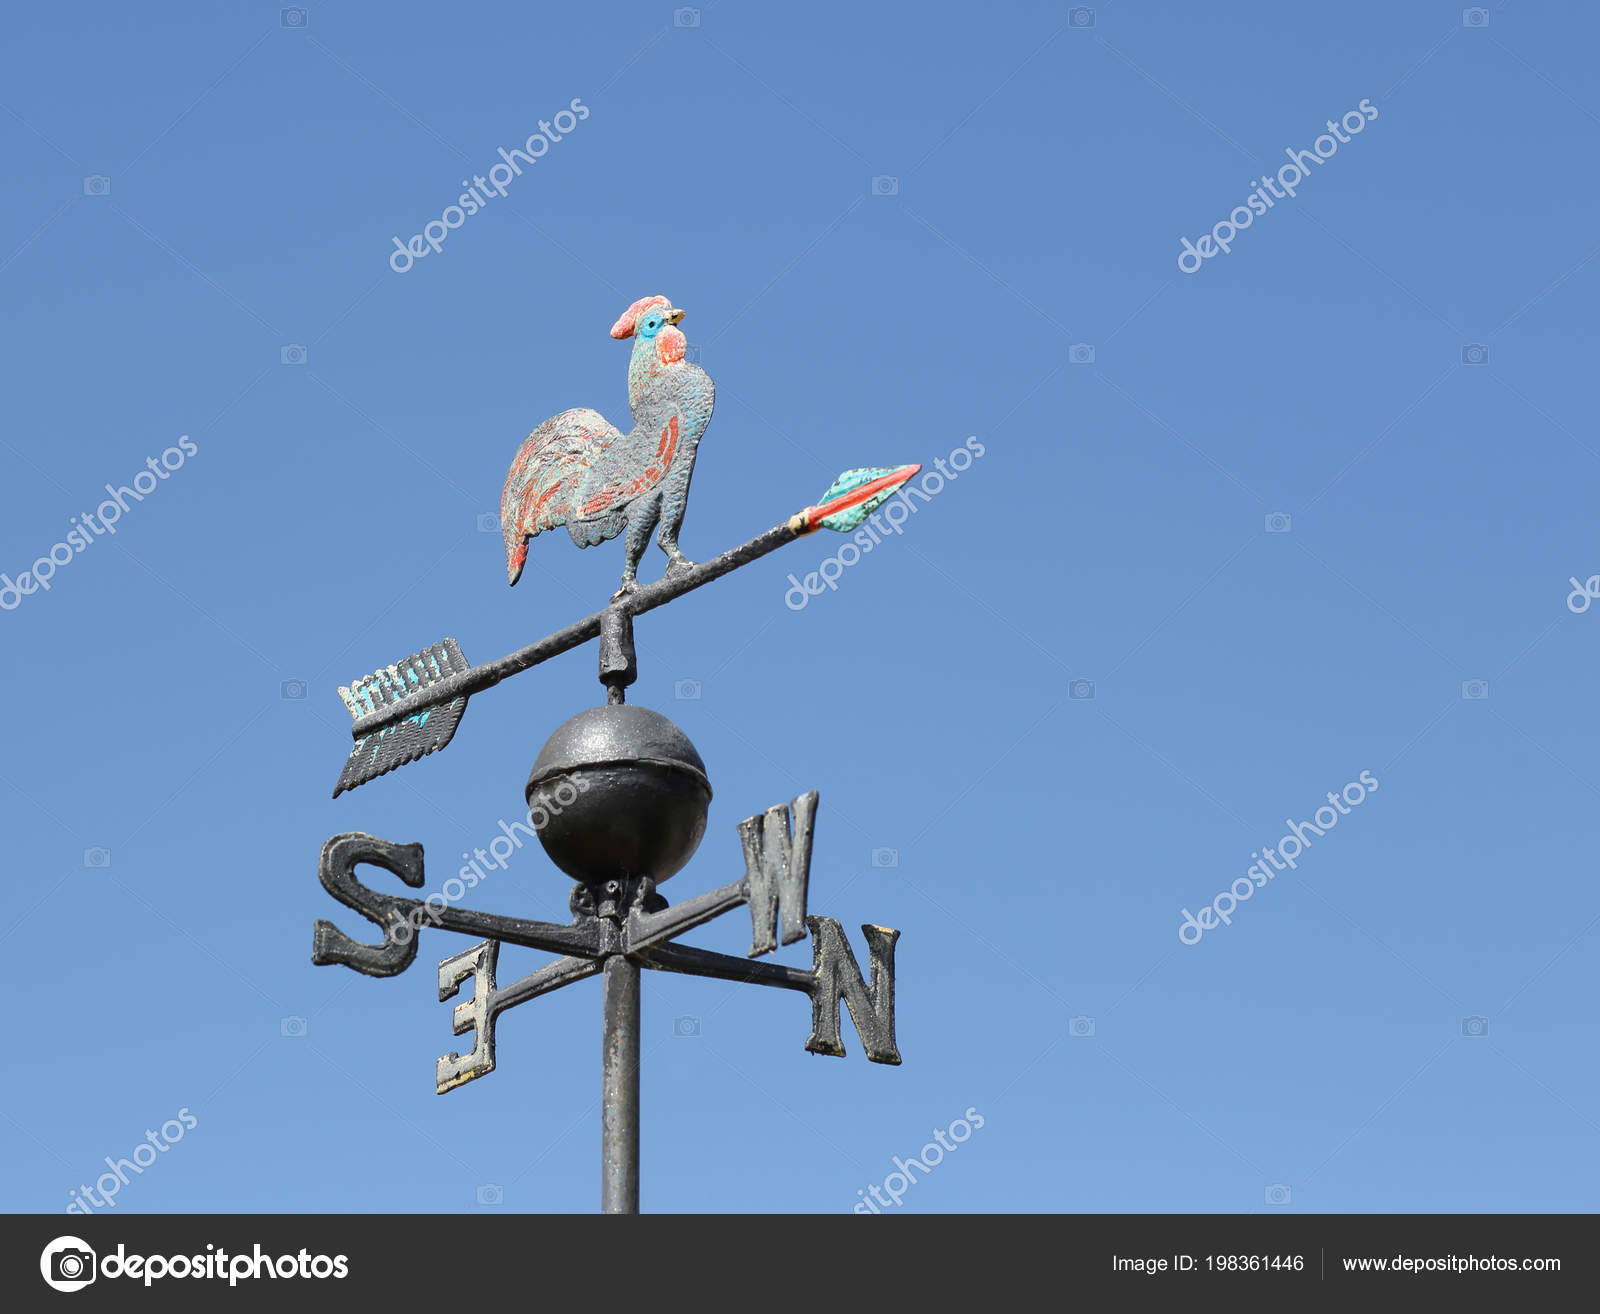 Old Wind Vane Detect Wind Direction Arrow Pointing Cardinal Point